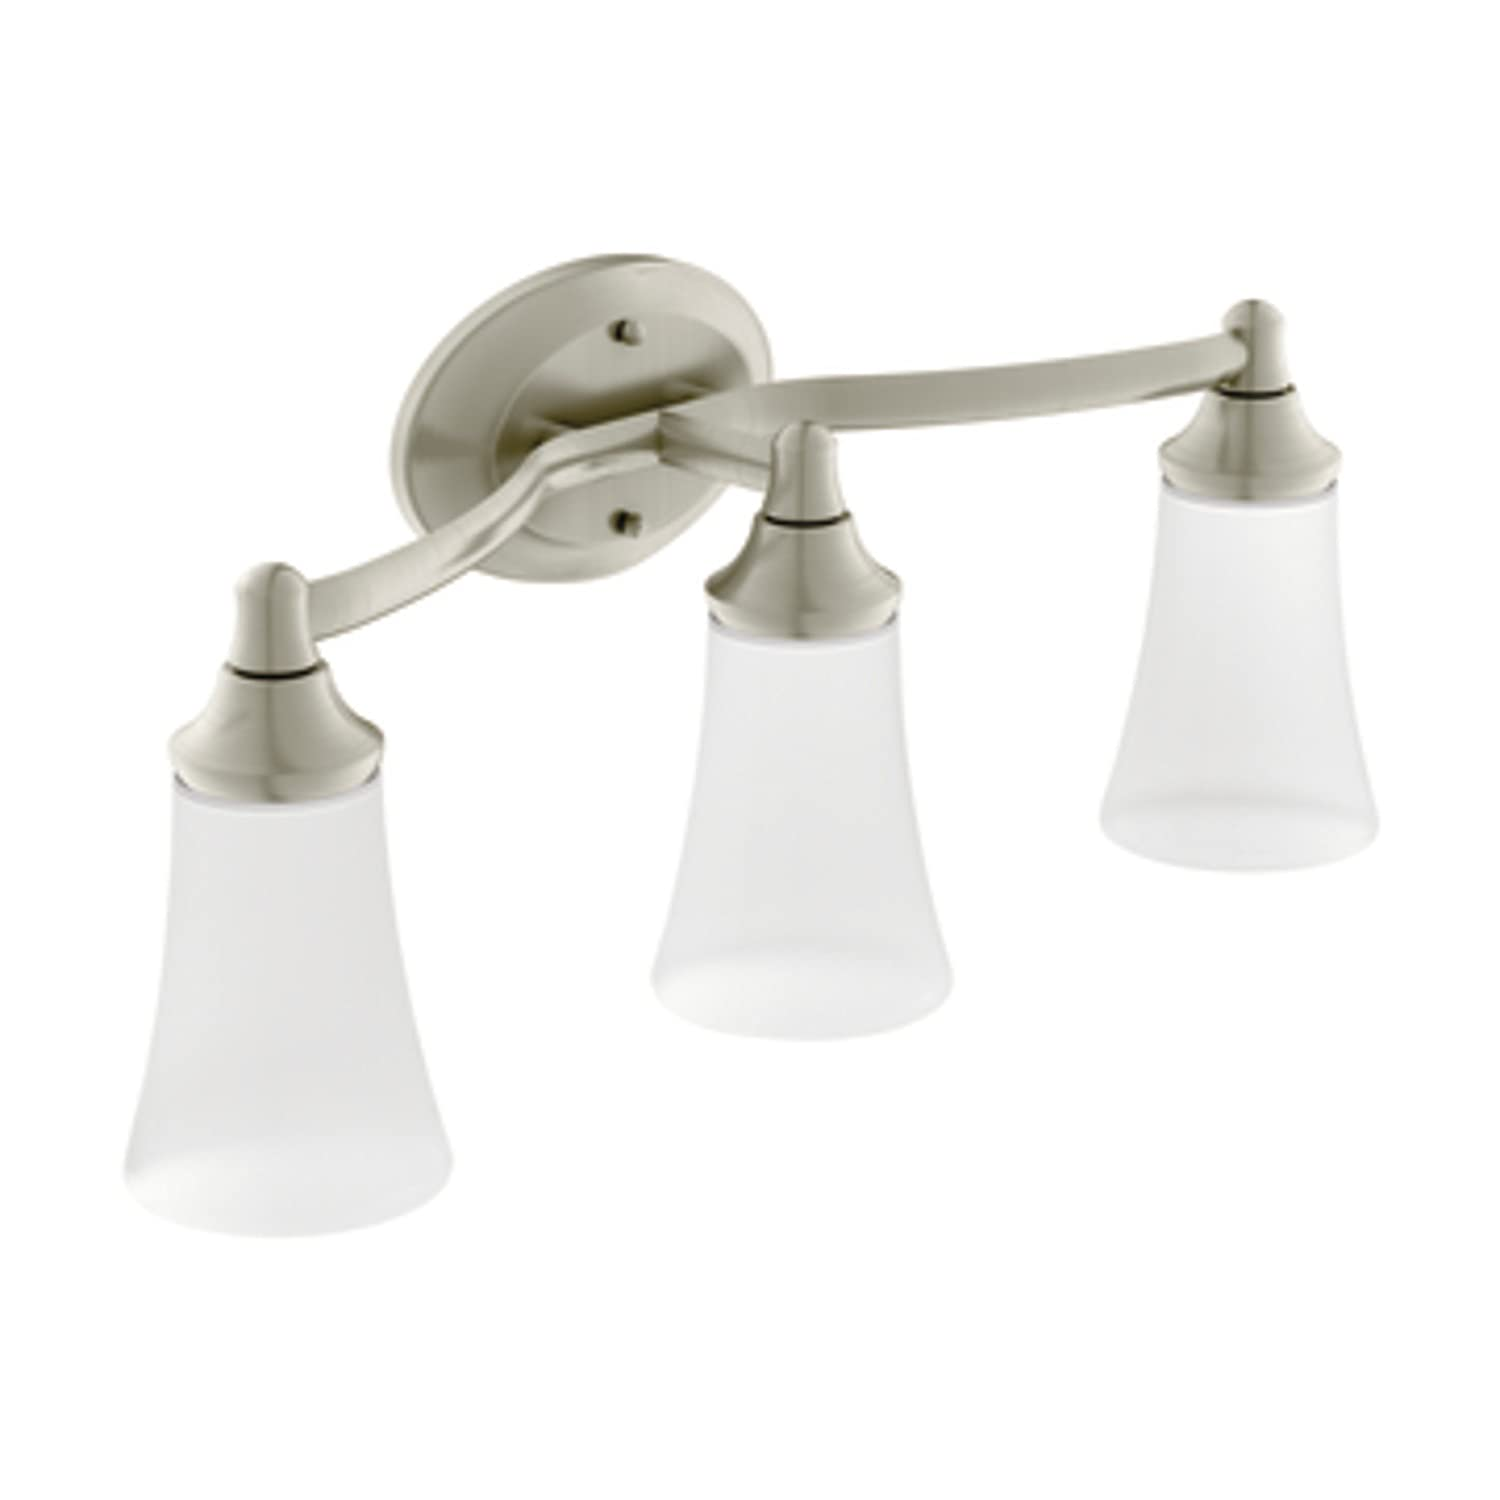 Moen YB2863BN Eva Bath Lighting, Brushed Nickel   Bathroom Hardware    Amazon.com